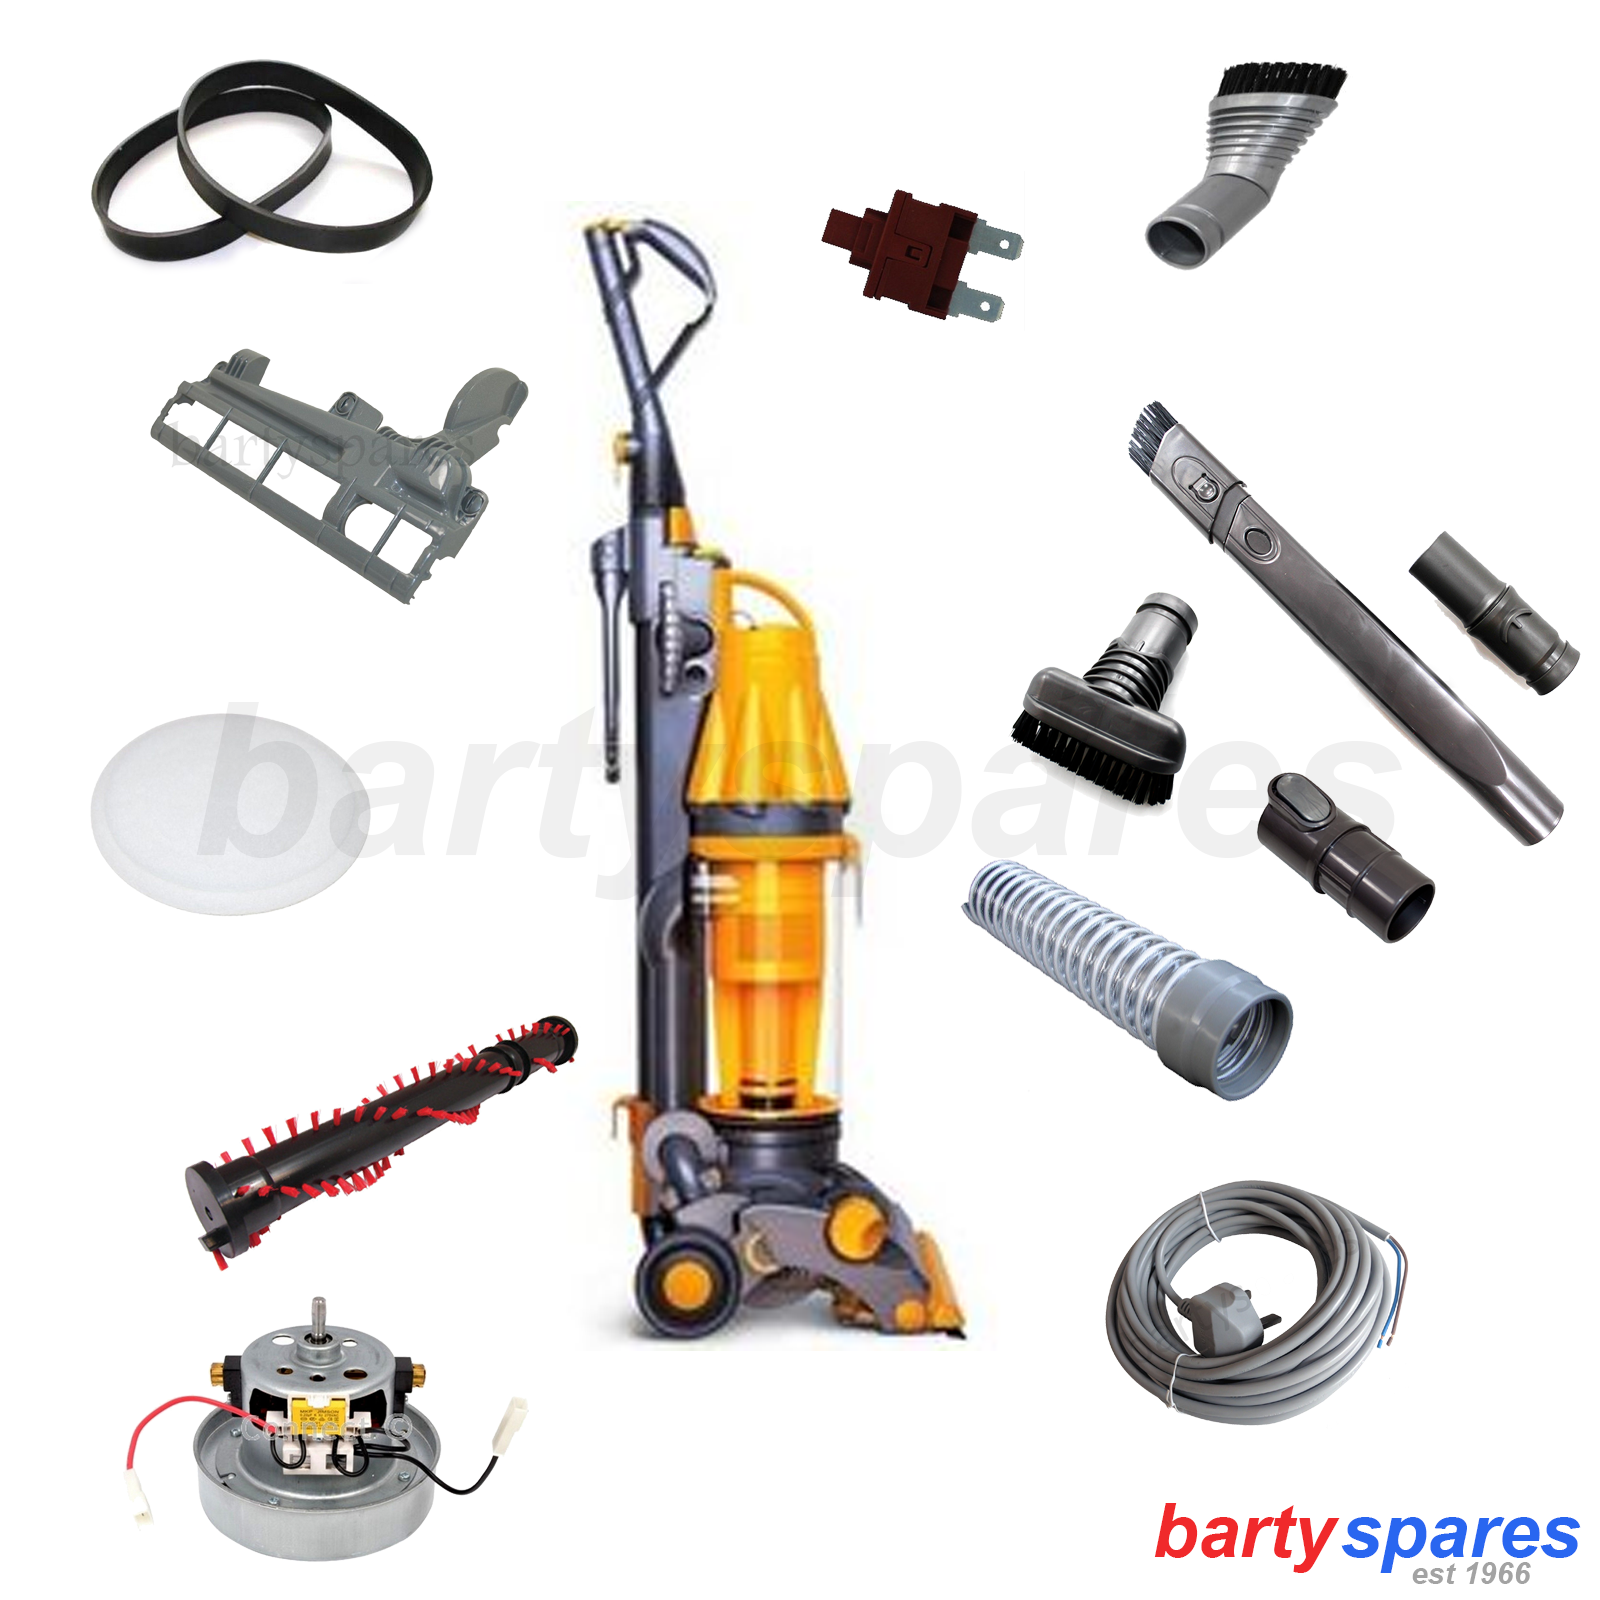 Dyson Hoover Spare Parts Ireland Newmotorjdi Co